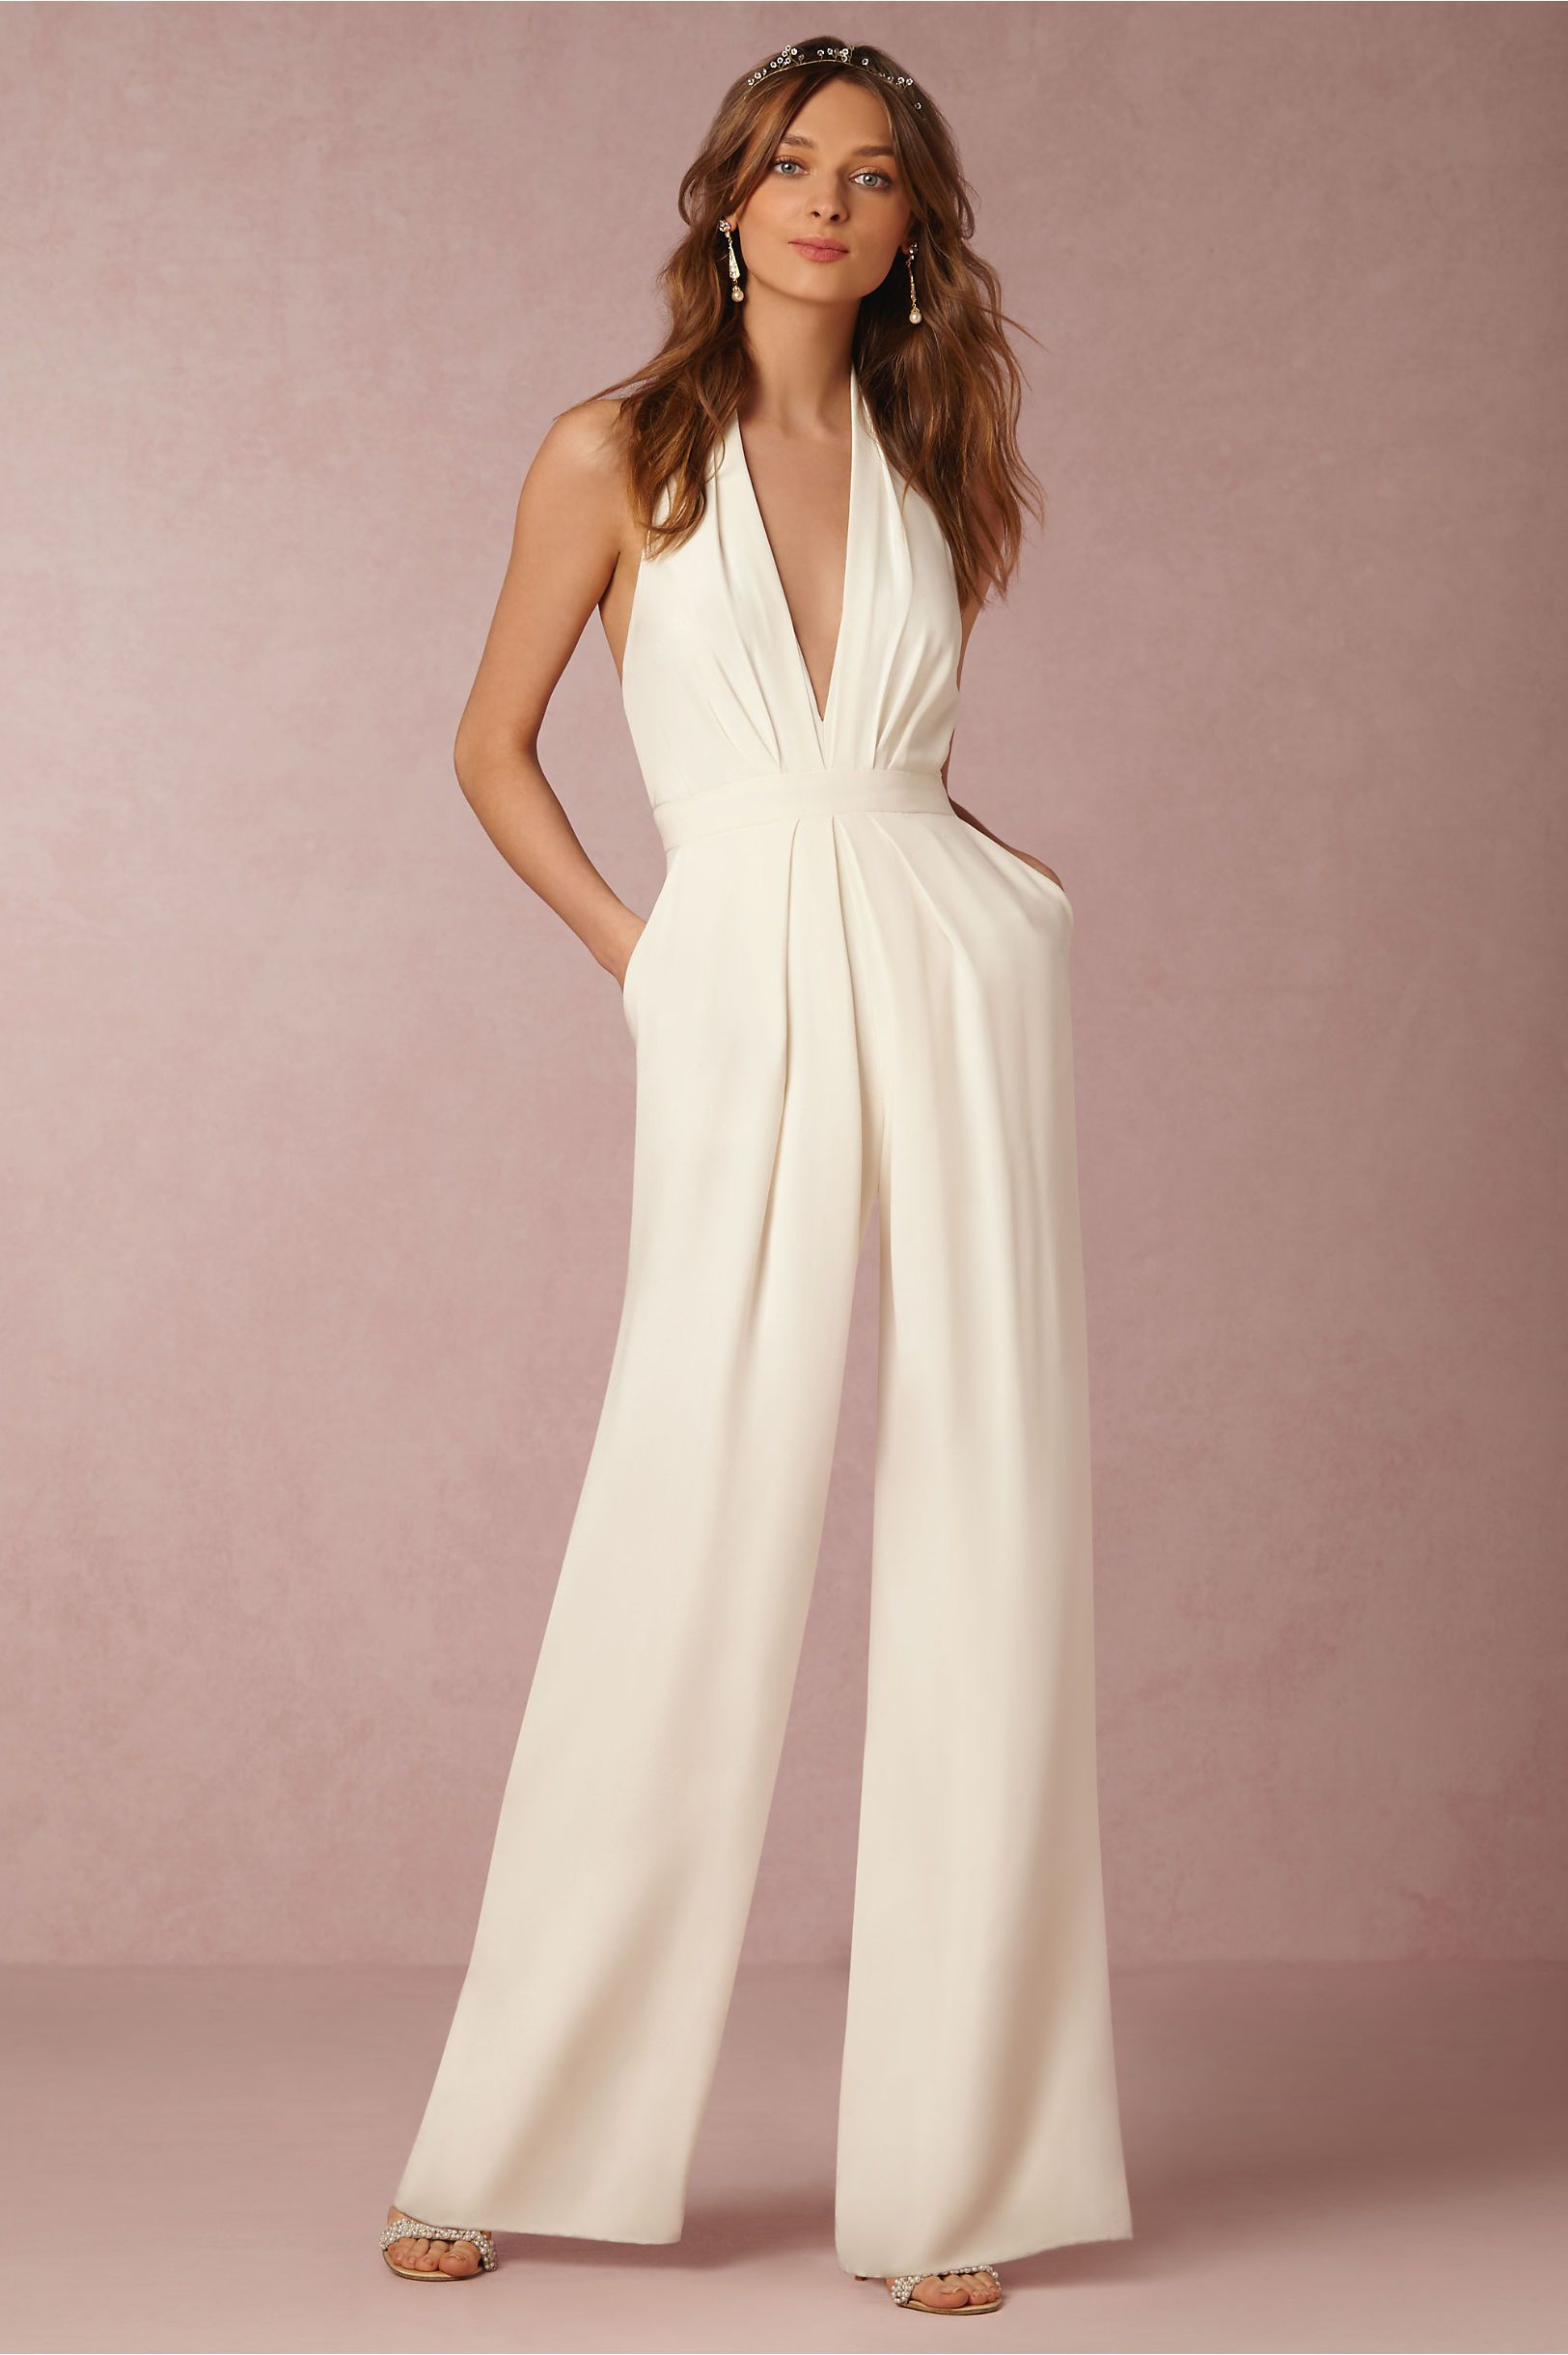 This is the jumpsuit I'll be wearing. My legs are deff not as long ...